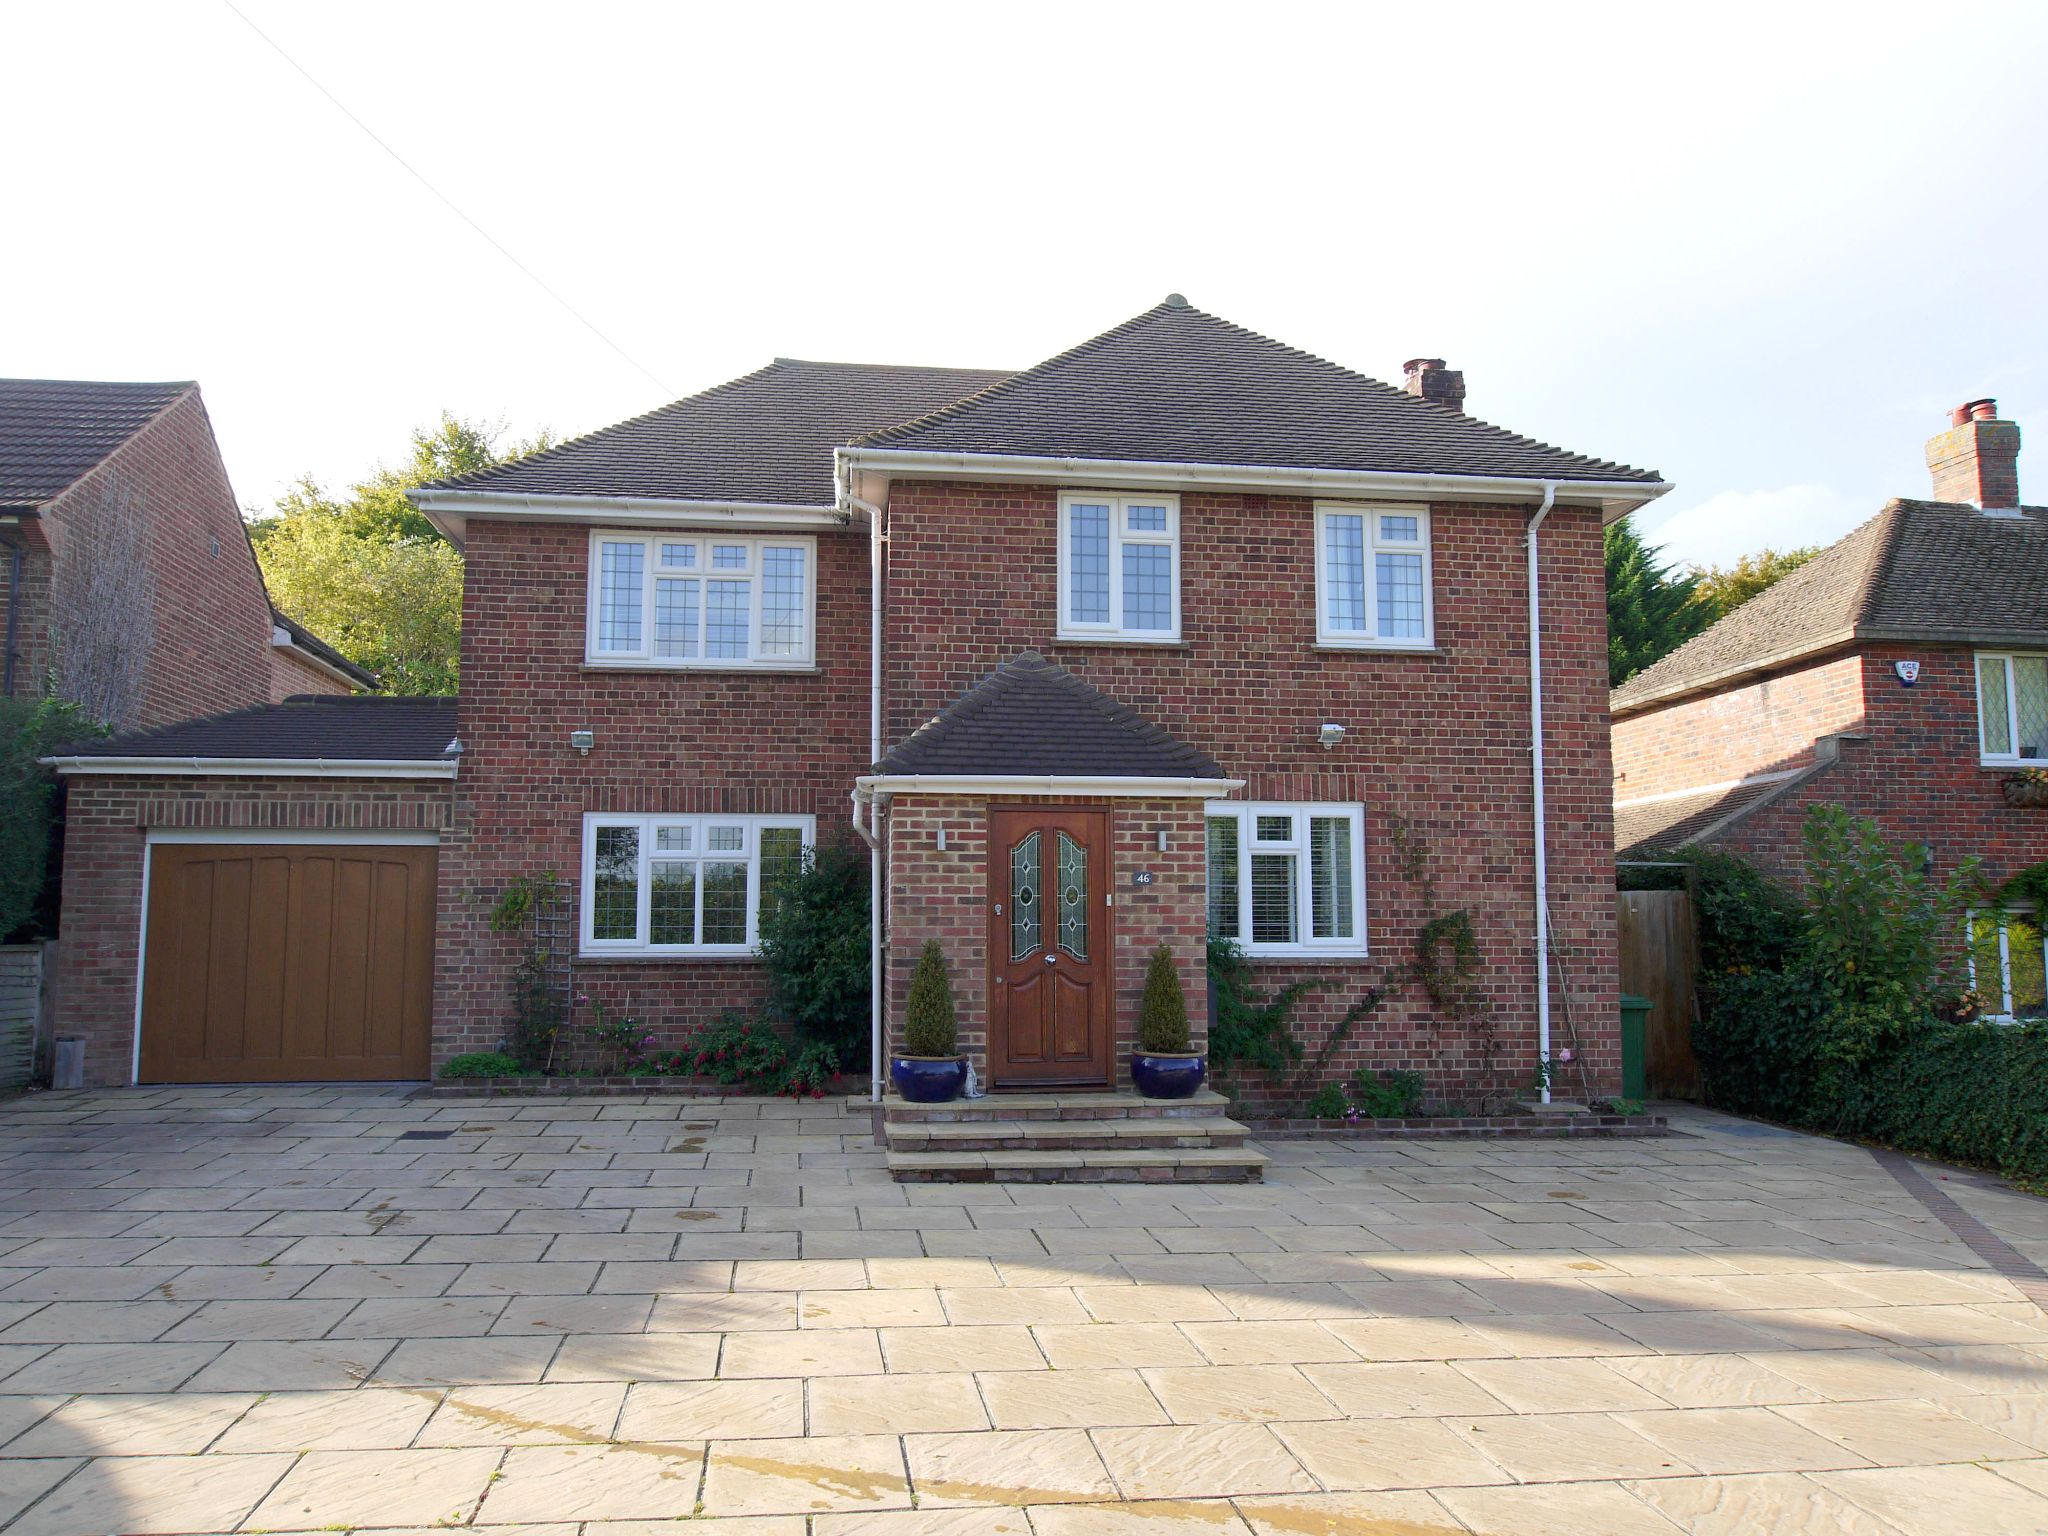 3 bedroom detached house Sold in Sevenoaks - Photograph 1